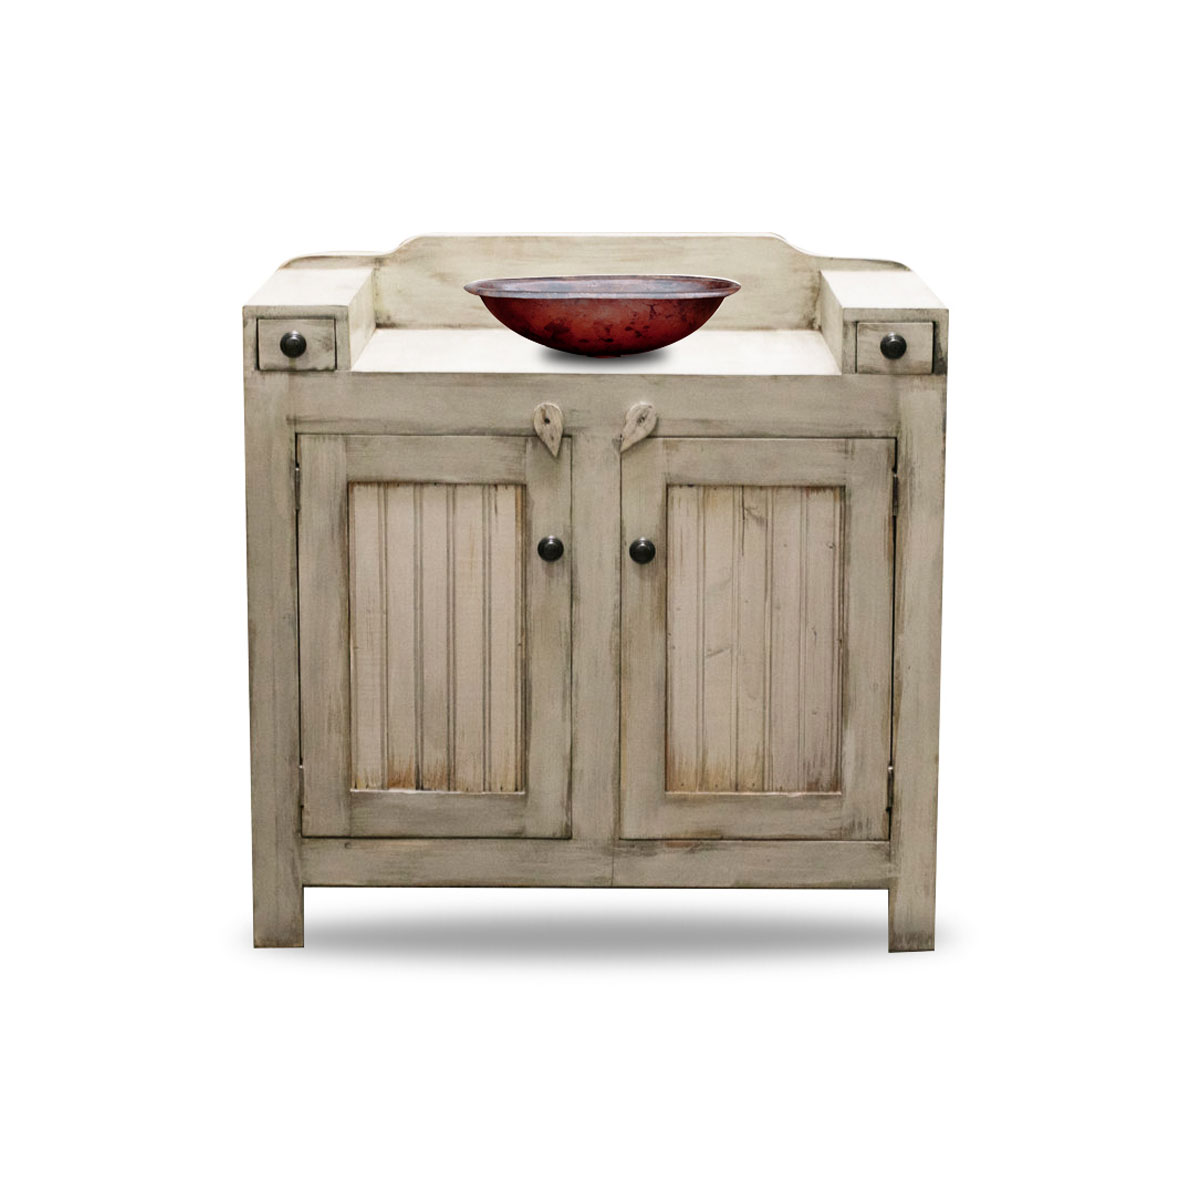 Purchase Charming And Small Farmhouse Vanity With A Very